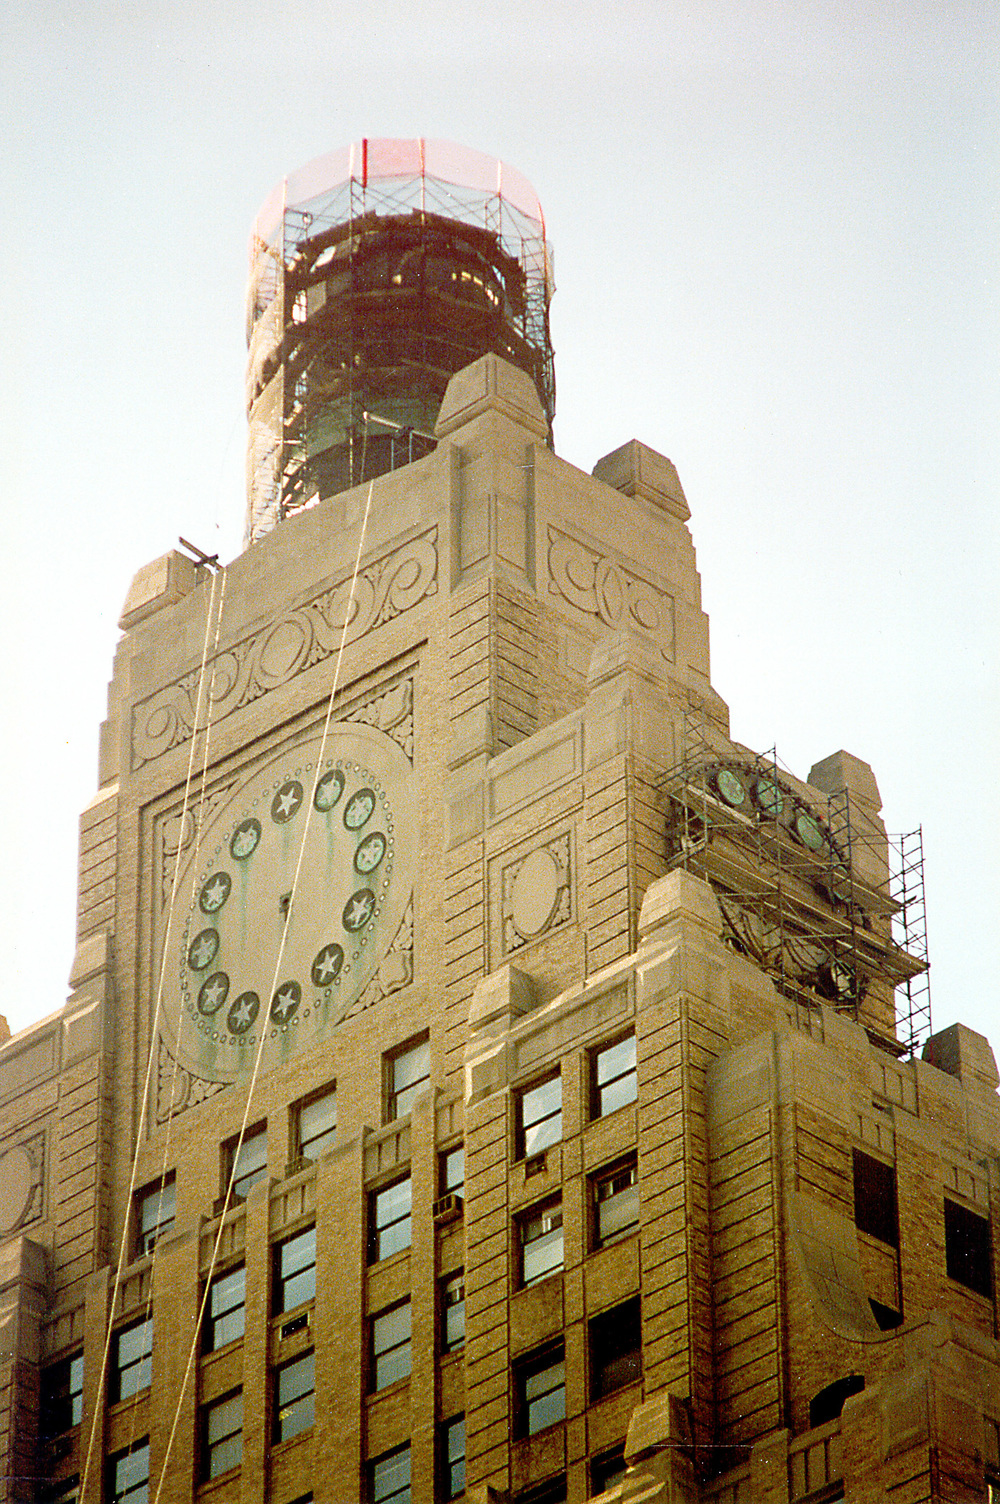 Globe & Clock Restoration. Tobin Parnes Design. New York, NY. Historic Preservation. Pre-Construction Work.